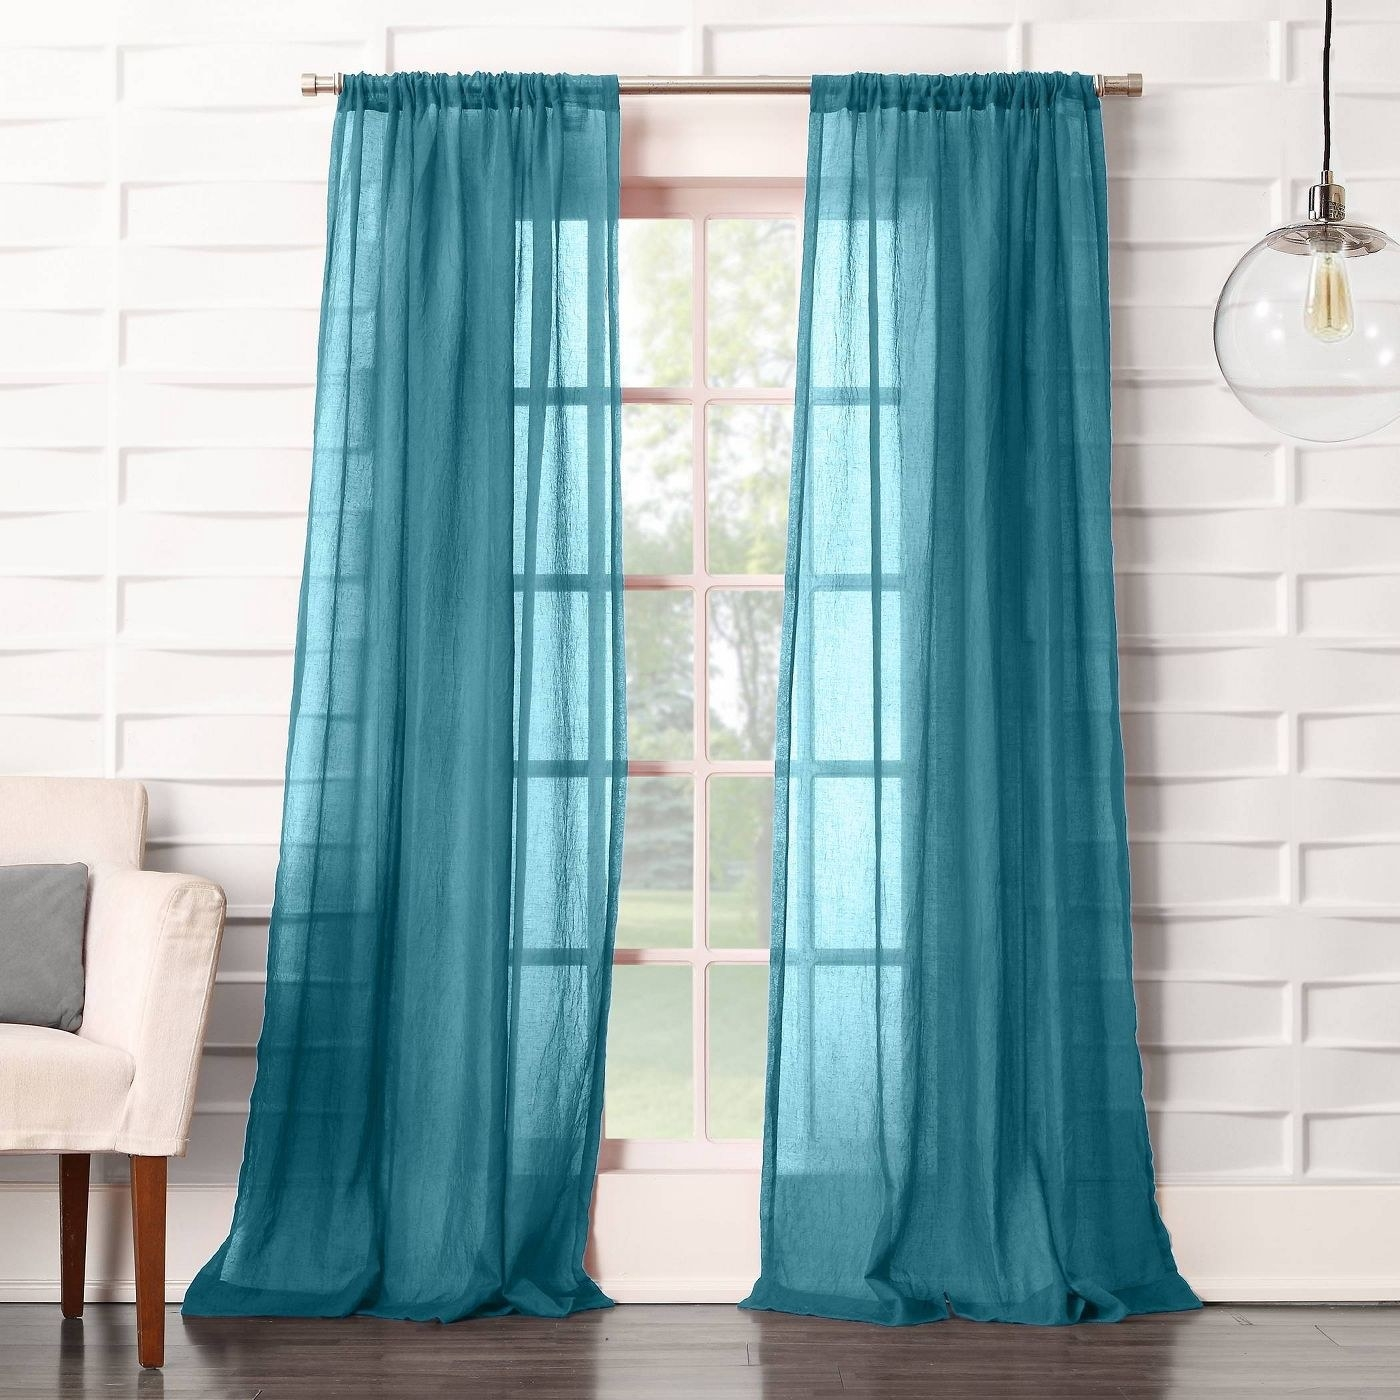 Blue sheer curtains in a home